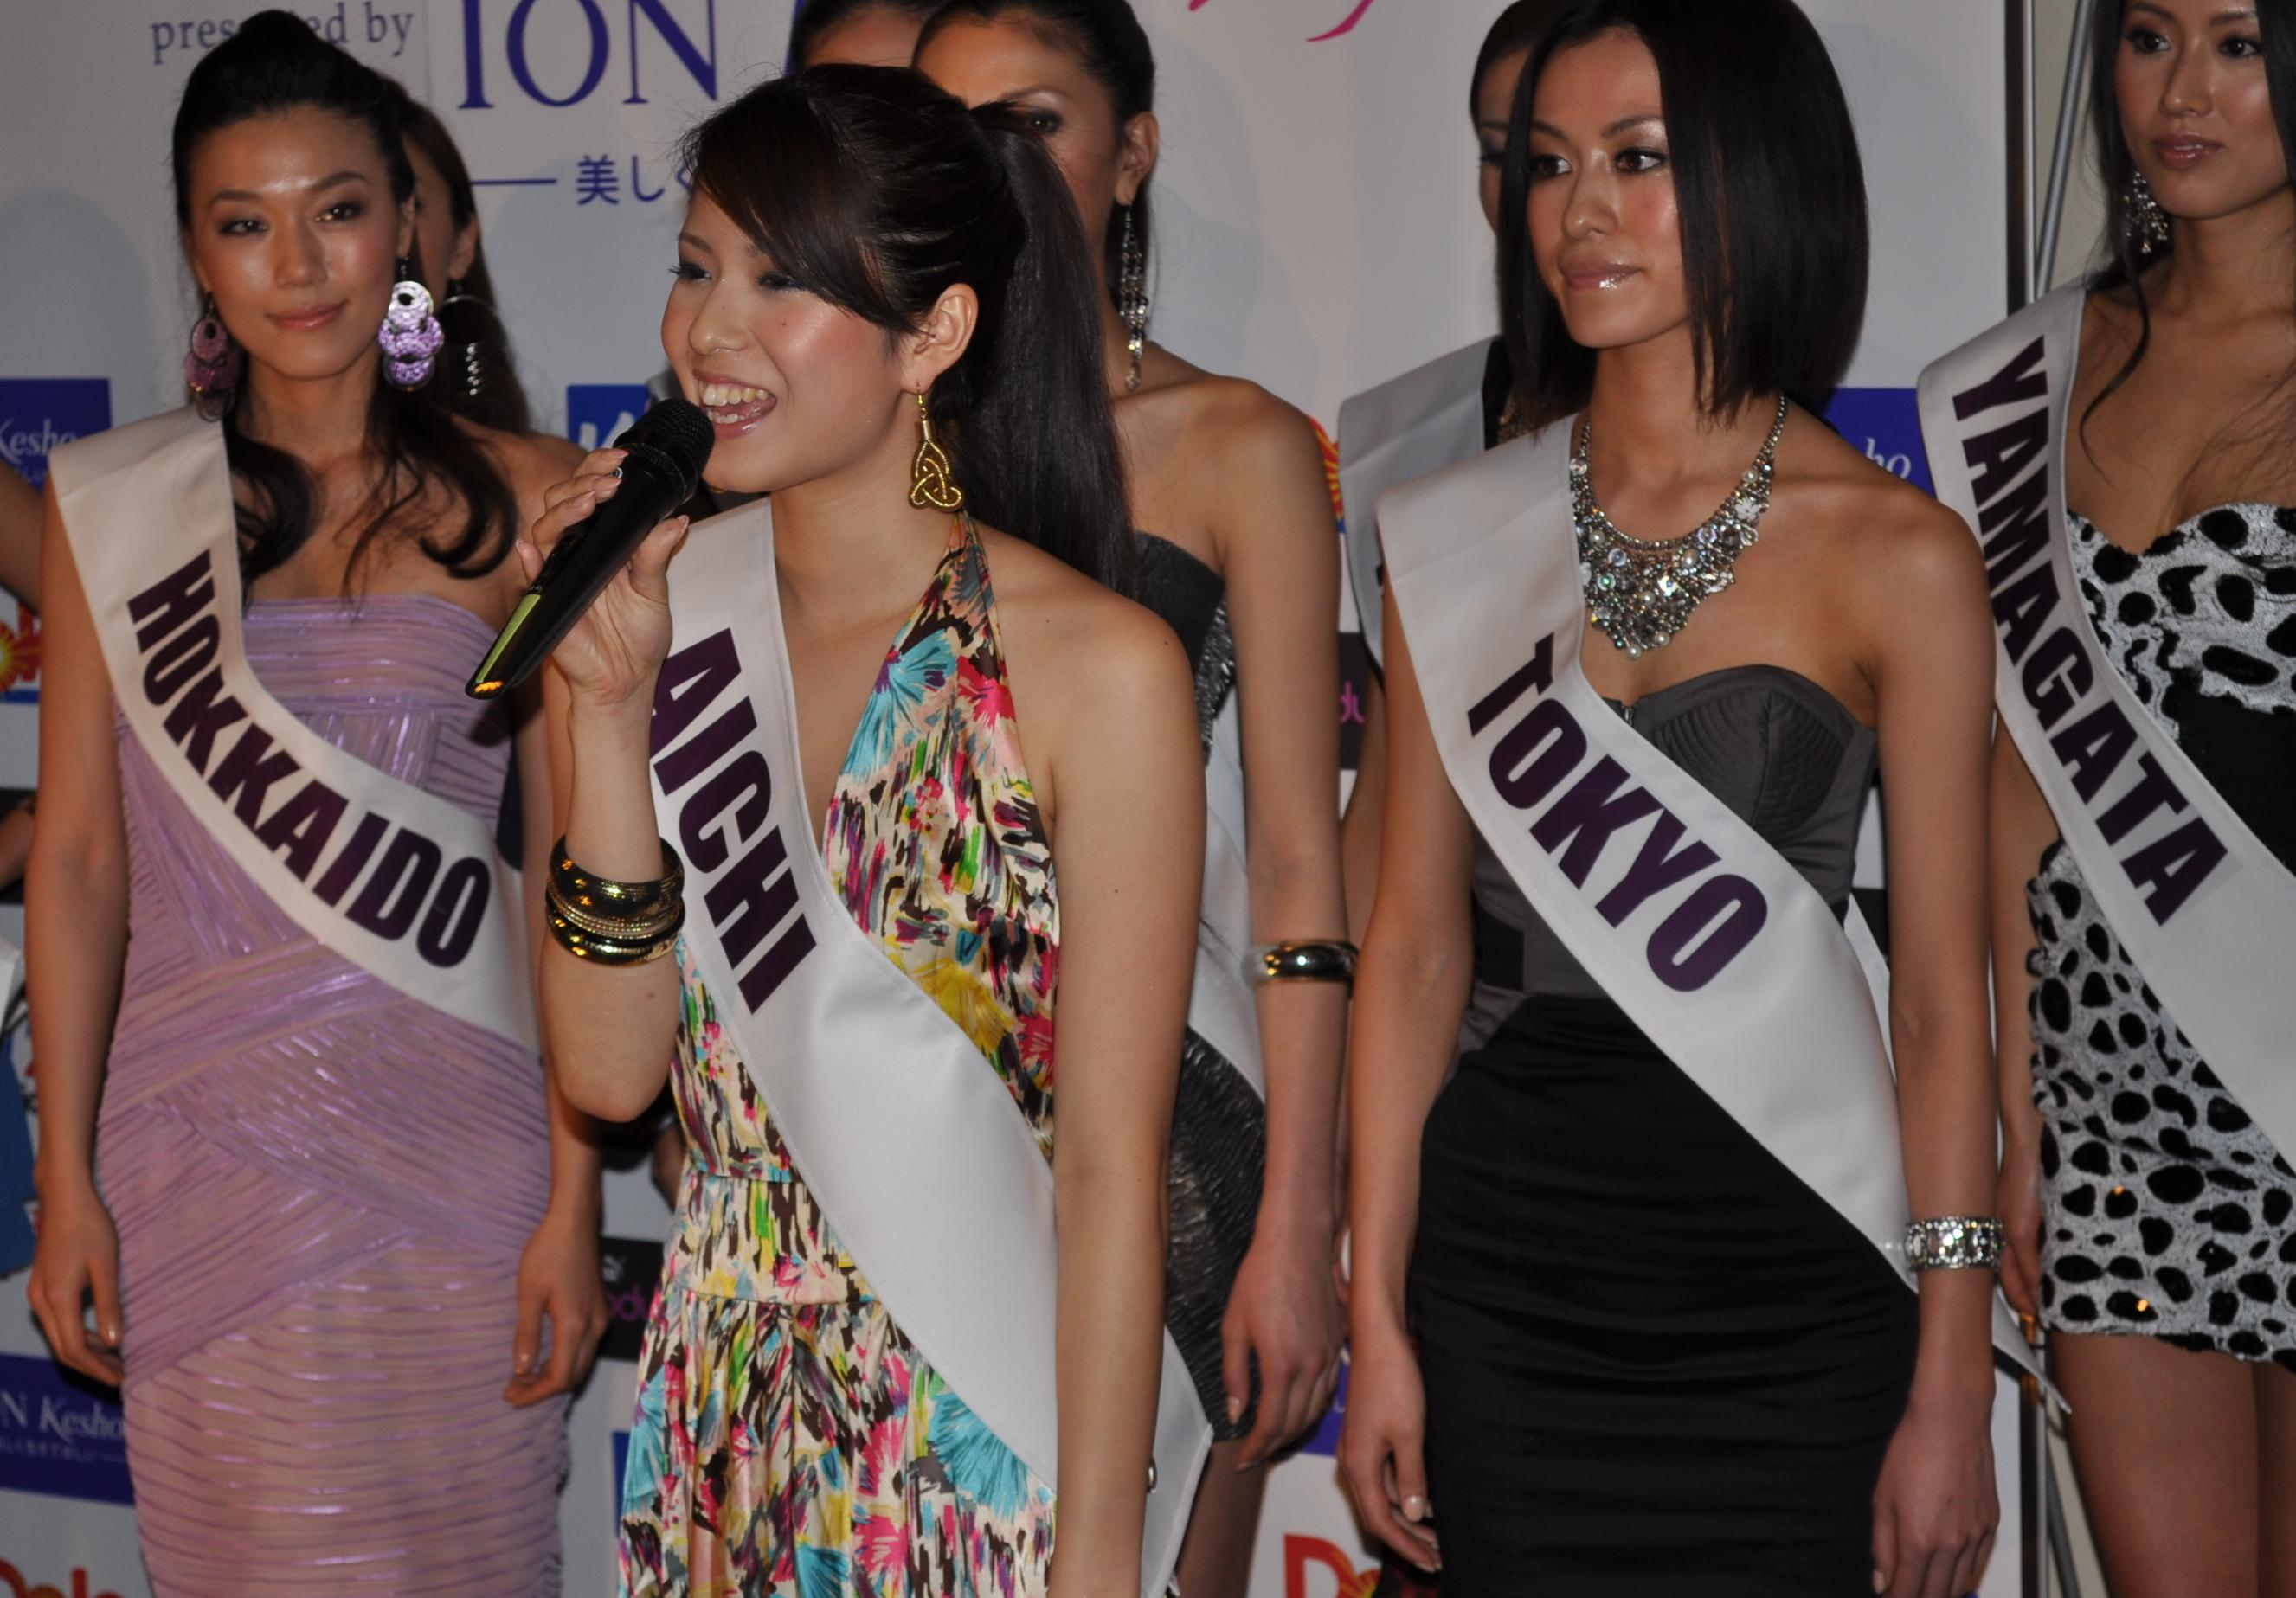 Road to Miss Universe Japan 2011 5590885433_593a636314_o